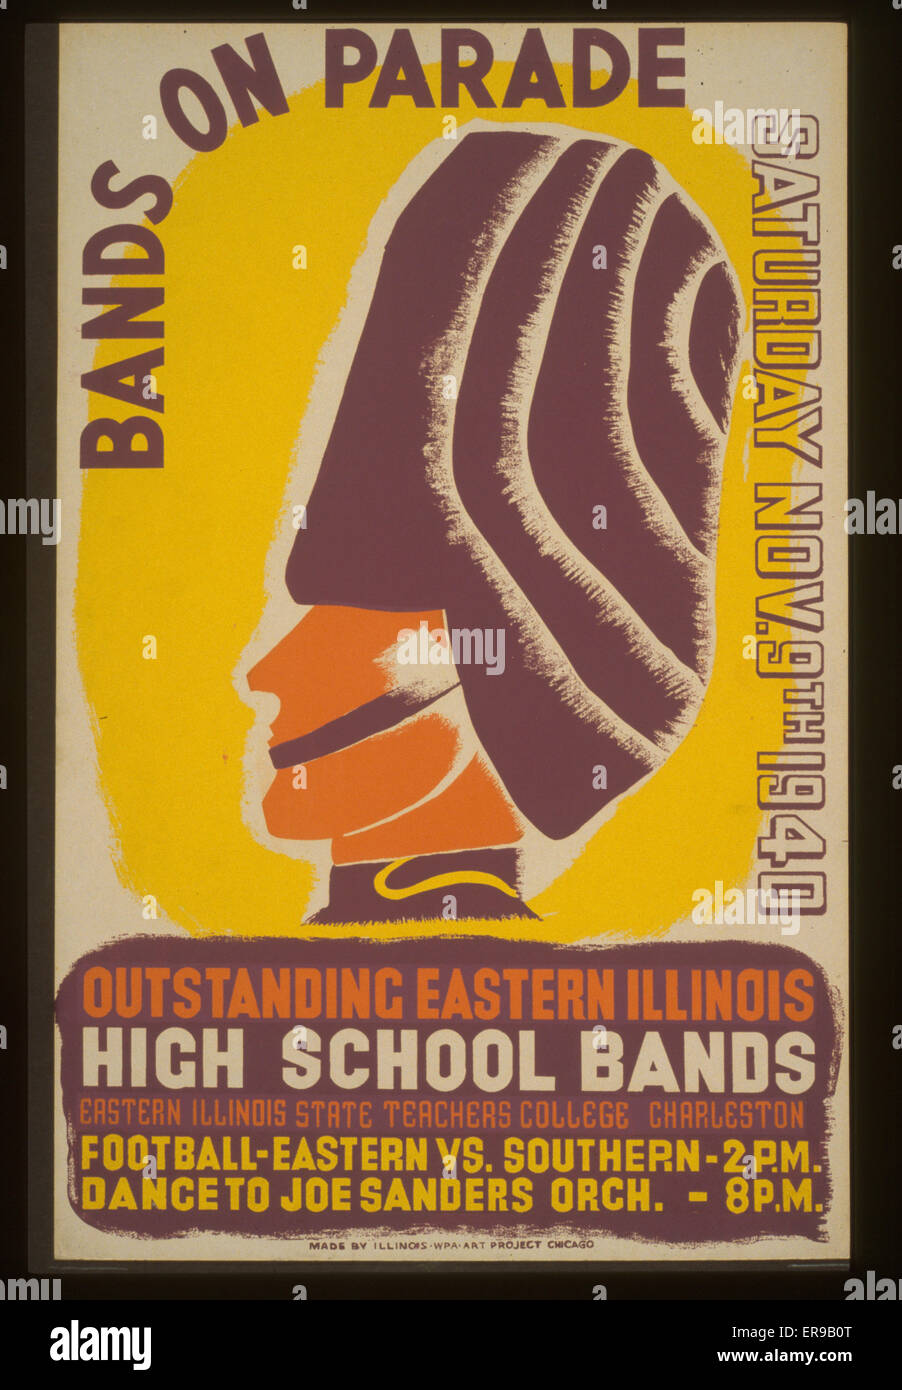 Bands on parade outstanding eastern Illinois high school bands. Poster for a high school band parade at Eastern - Stock Image